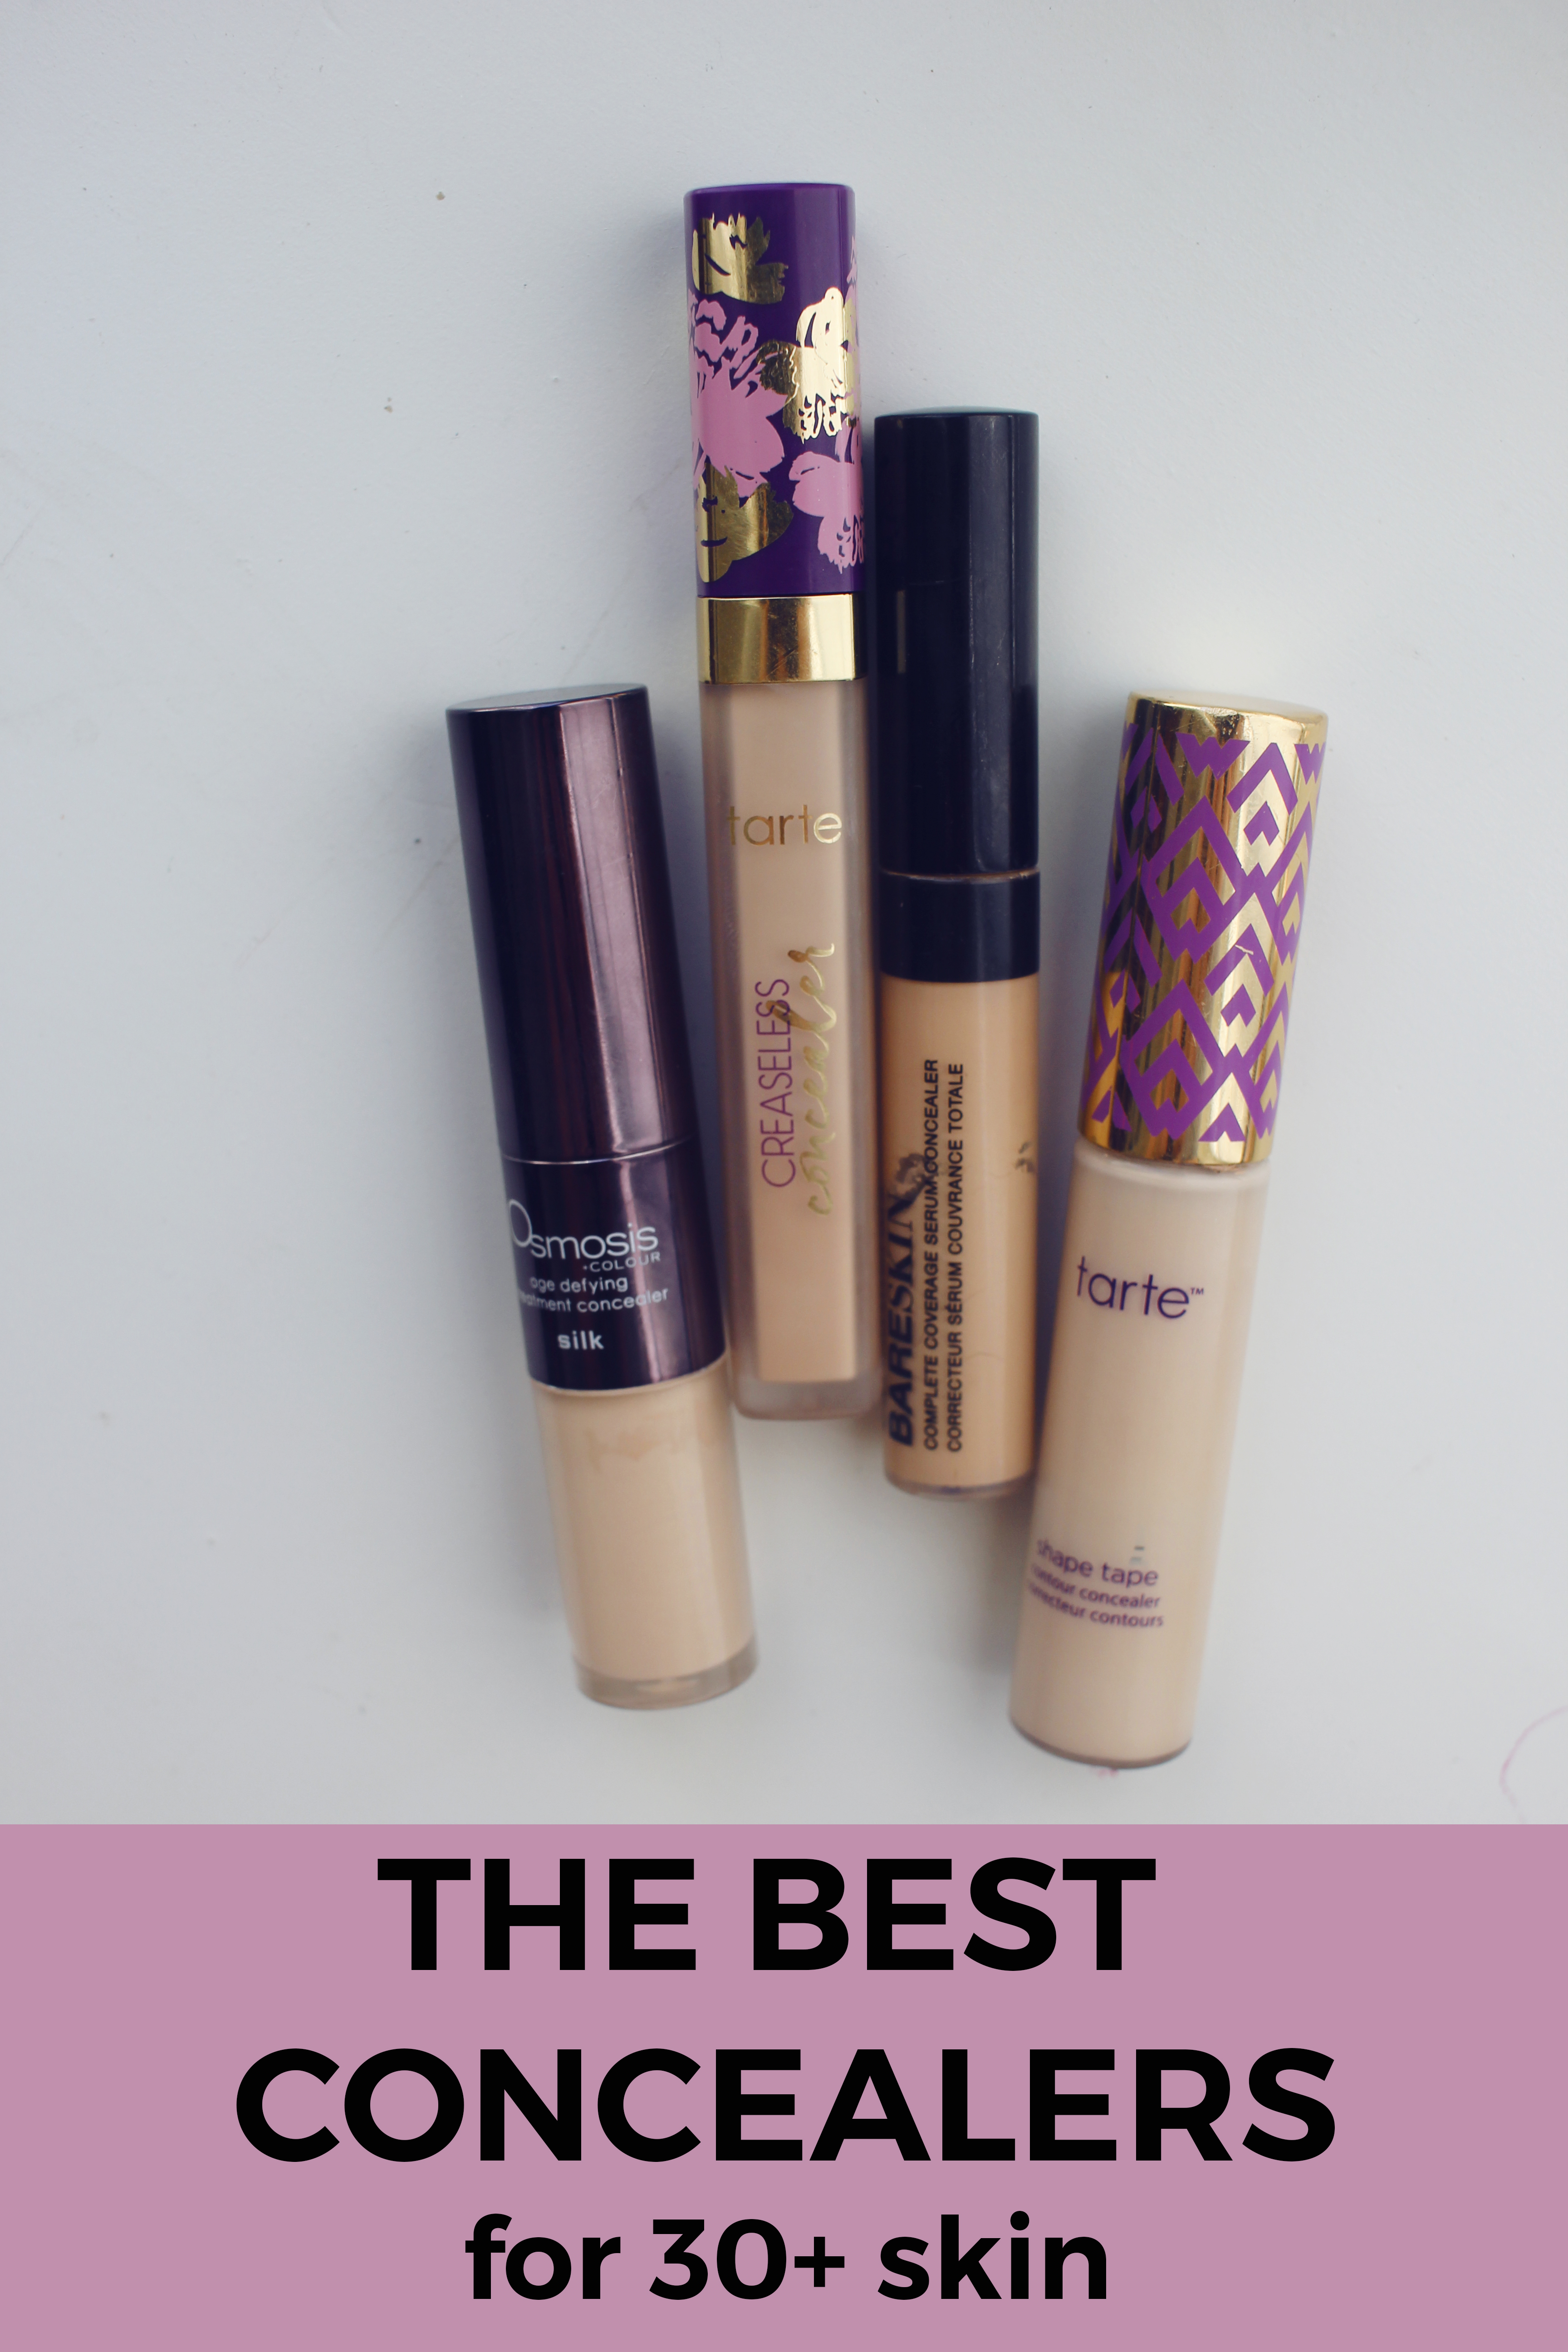 The Best Concealers for 30+ Skin